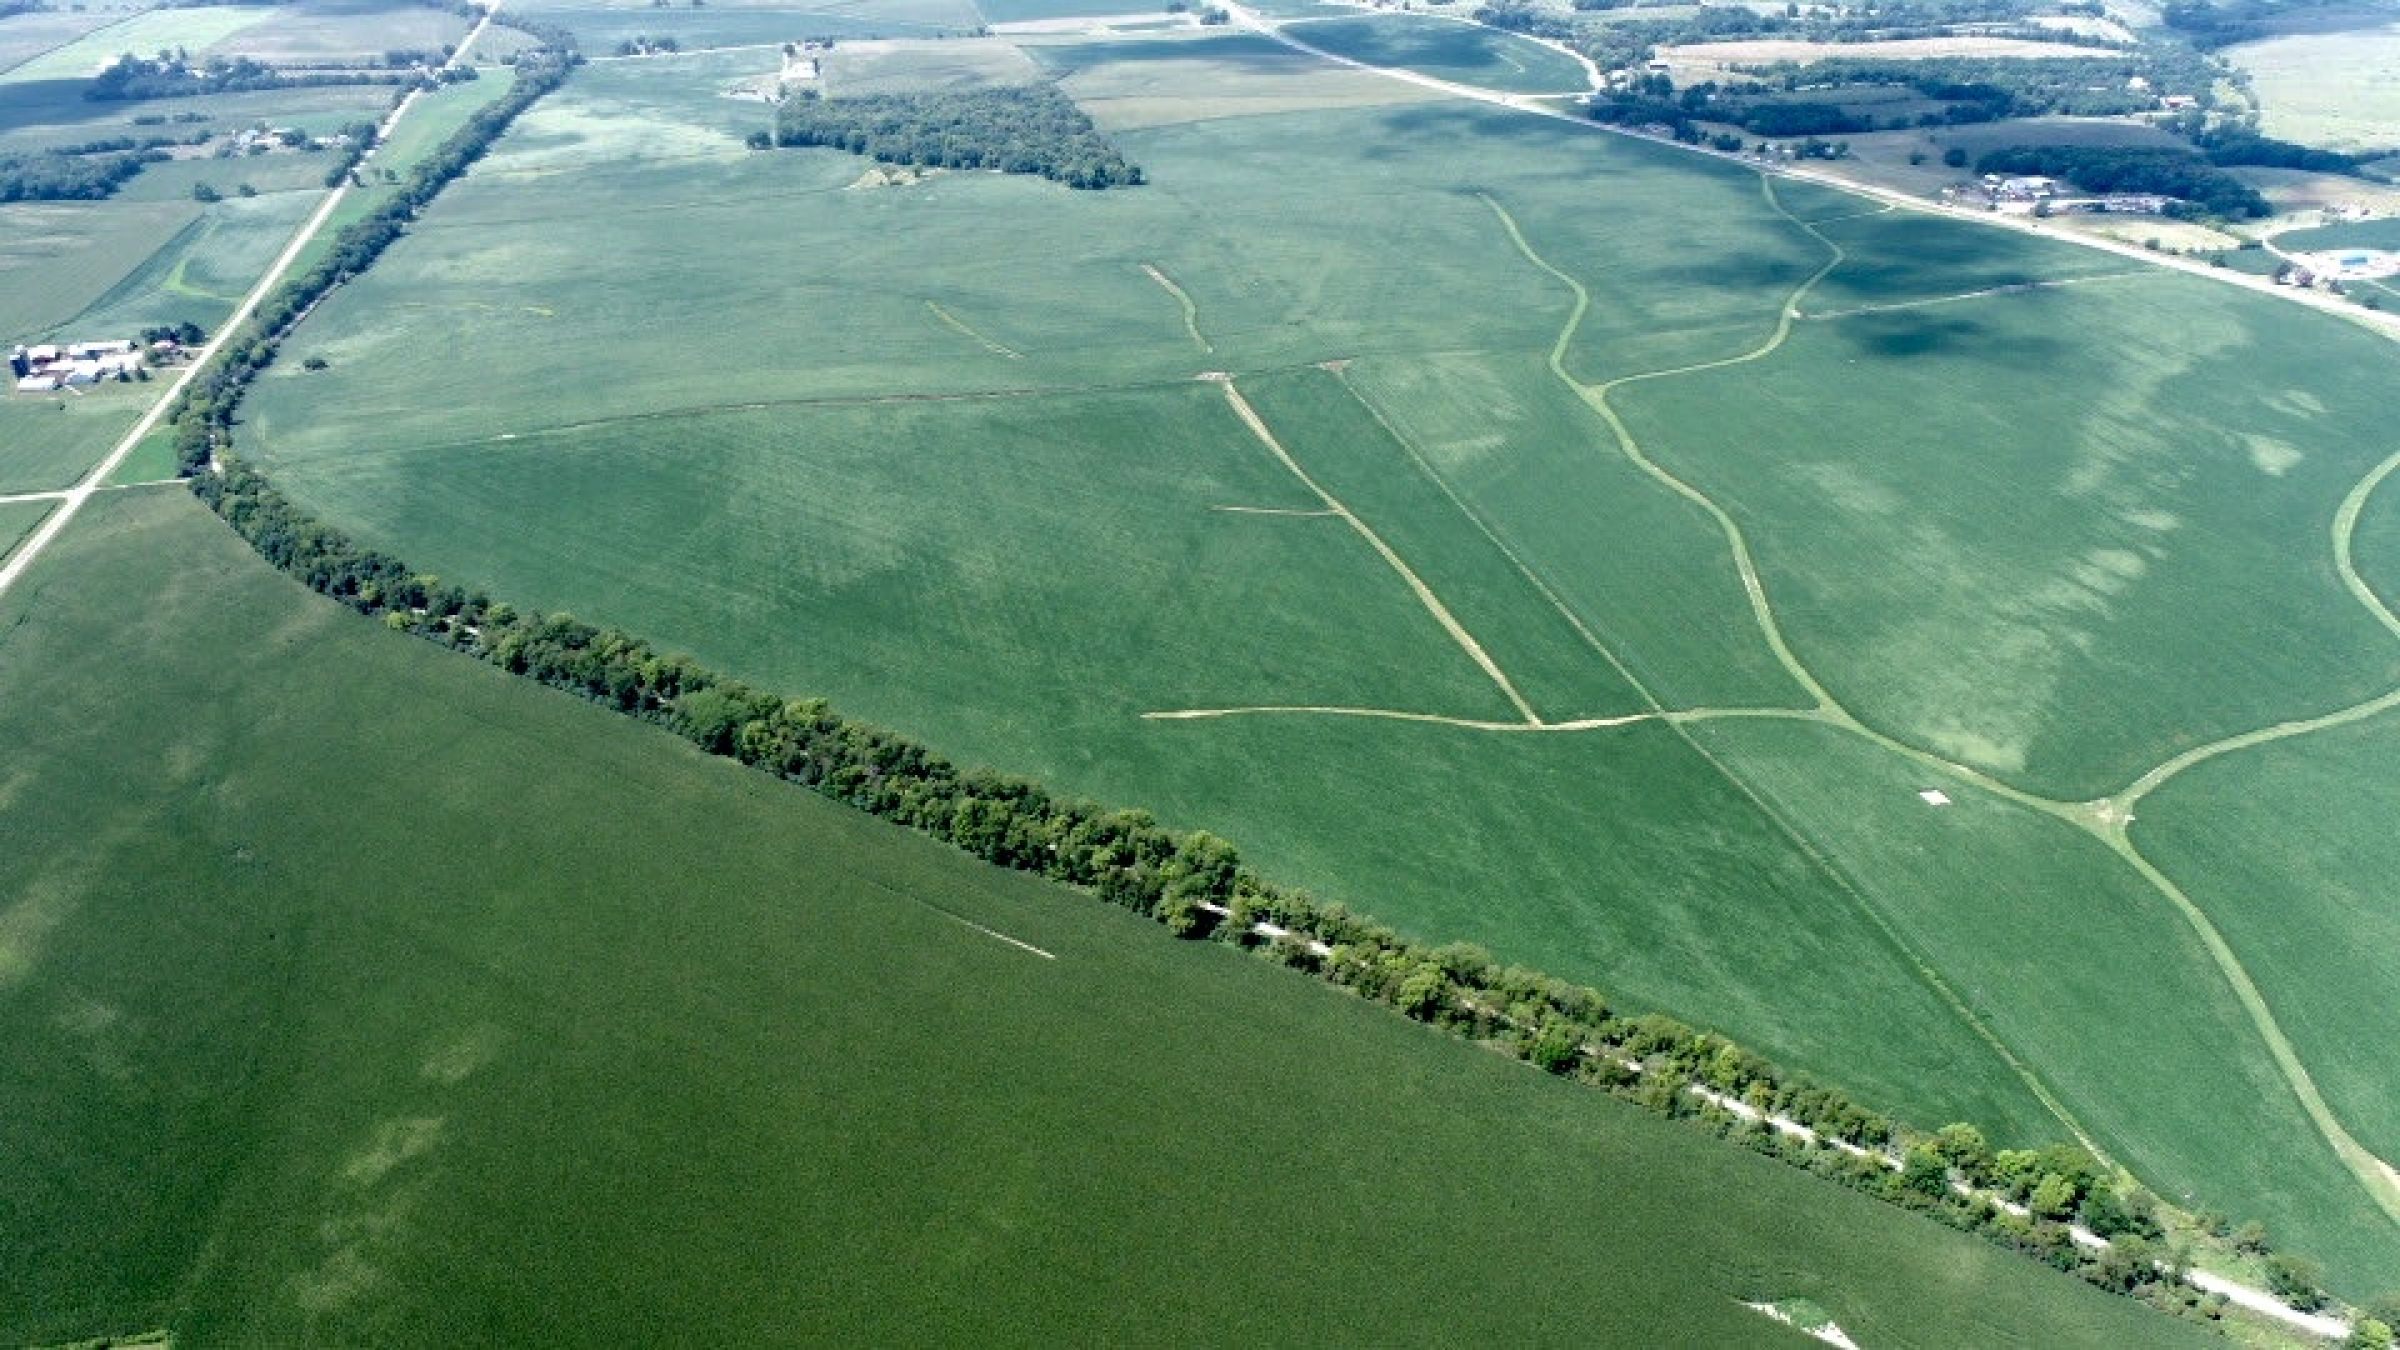 land-green-county-wisconsin-80-acres-listing-number-15692-3-2021-08-19-205612.jpg